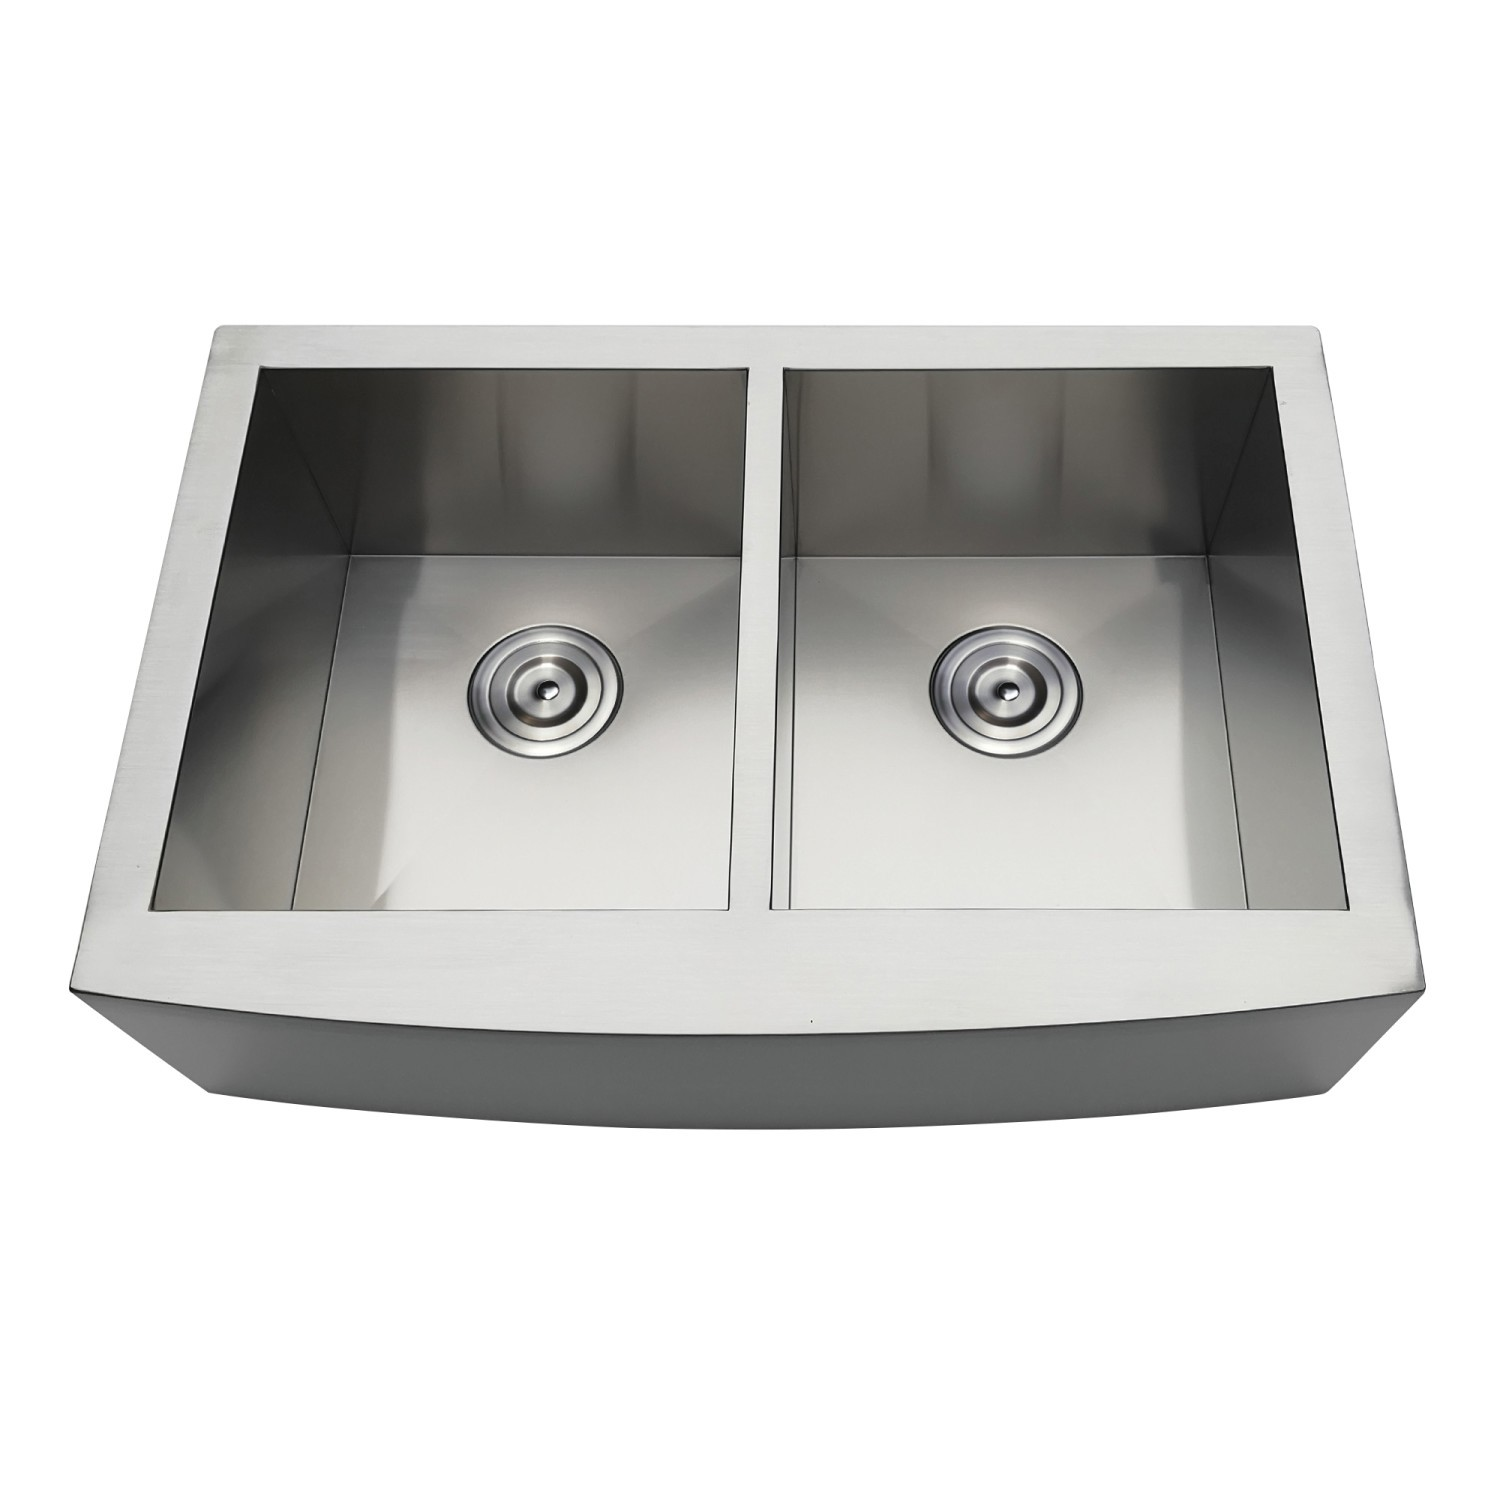 KINGSTON BRASS KDS332291DBNR GOURMETIER UPTOWNE 33 INCH DROP-IN DOUBLE BOWL  18-GAUGE KITCHEN SINK (1 HOLE)